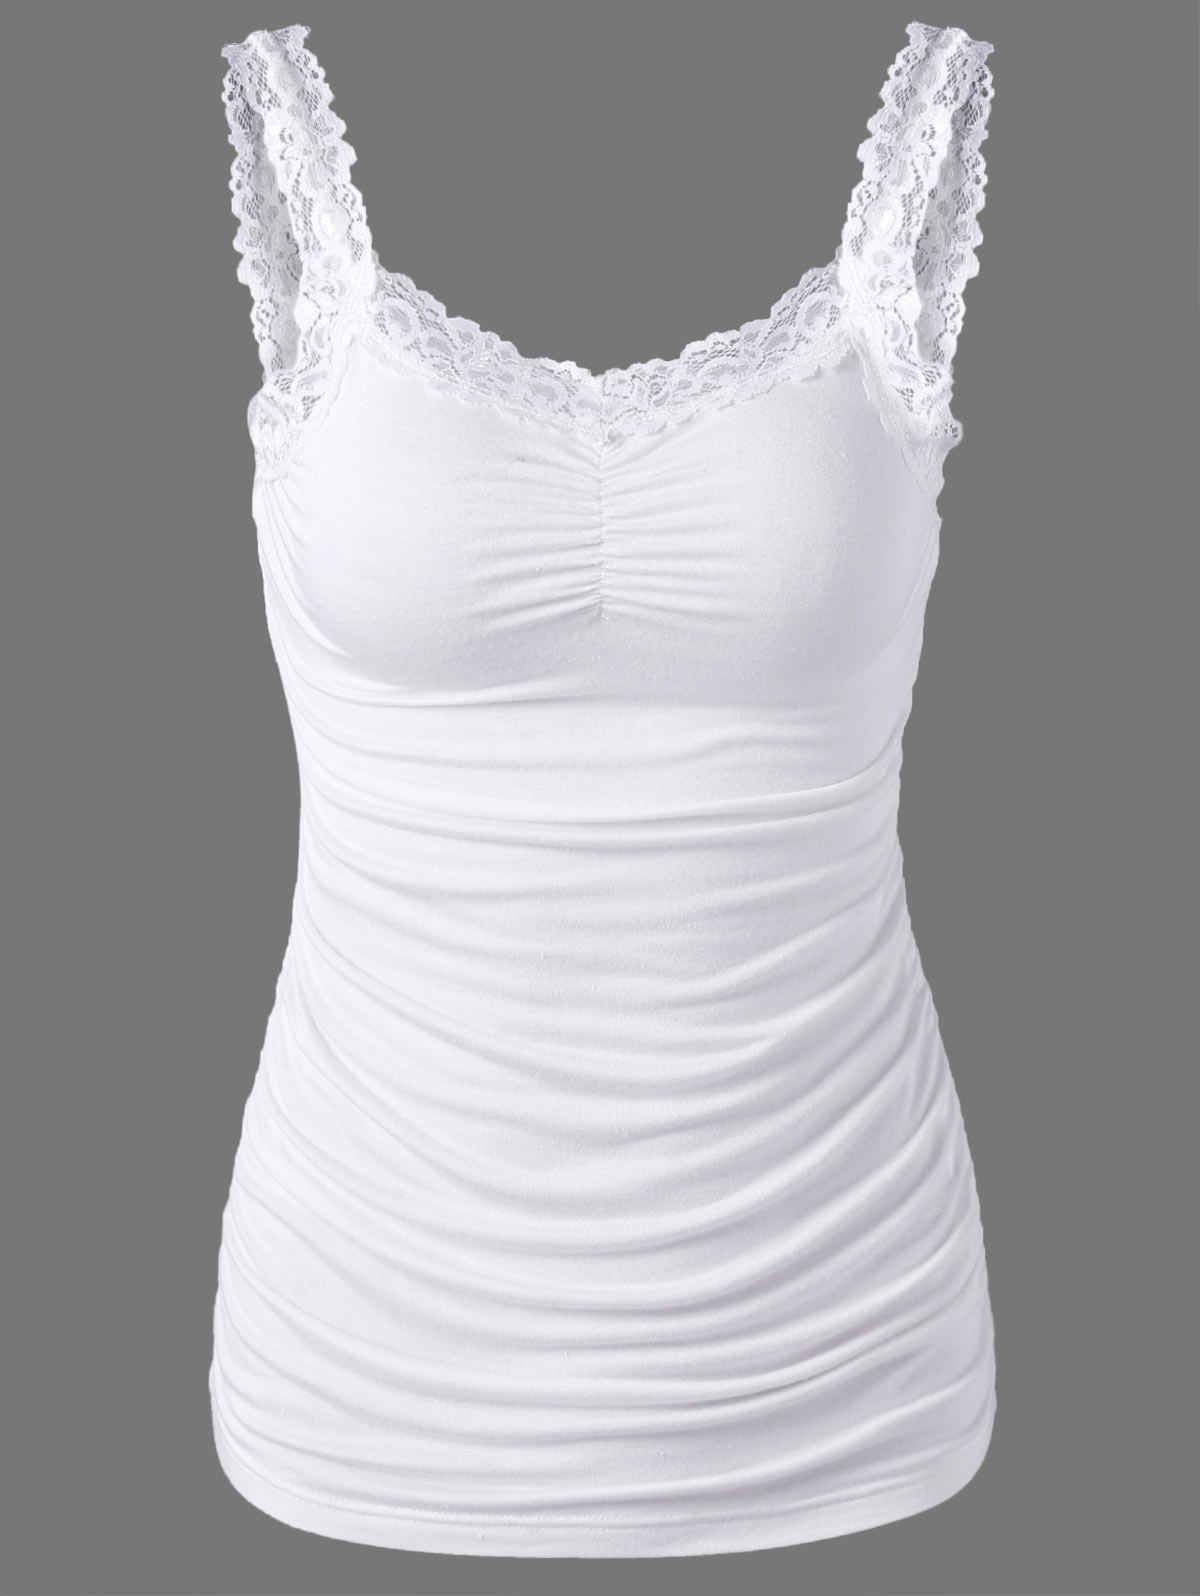 7f791921f2 T-shirt manches courtes en dentelle Get it here http   atomcurve.